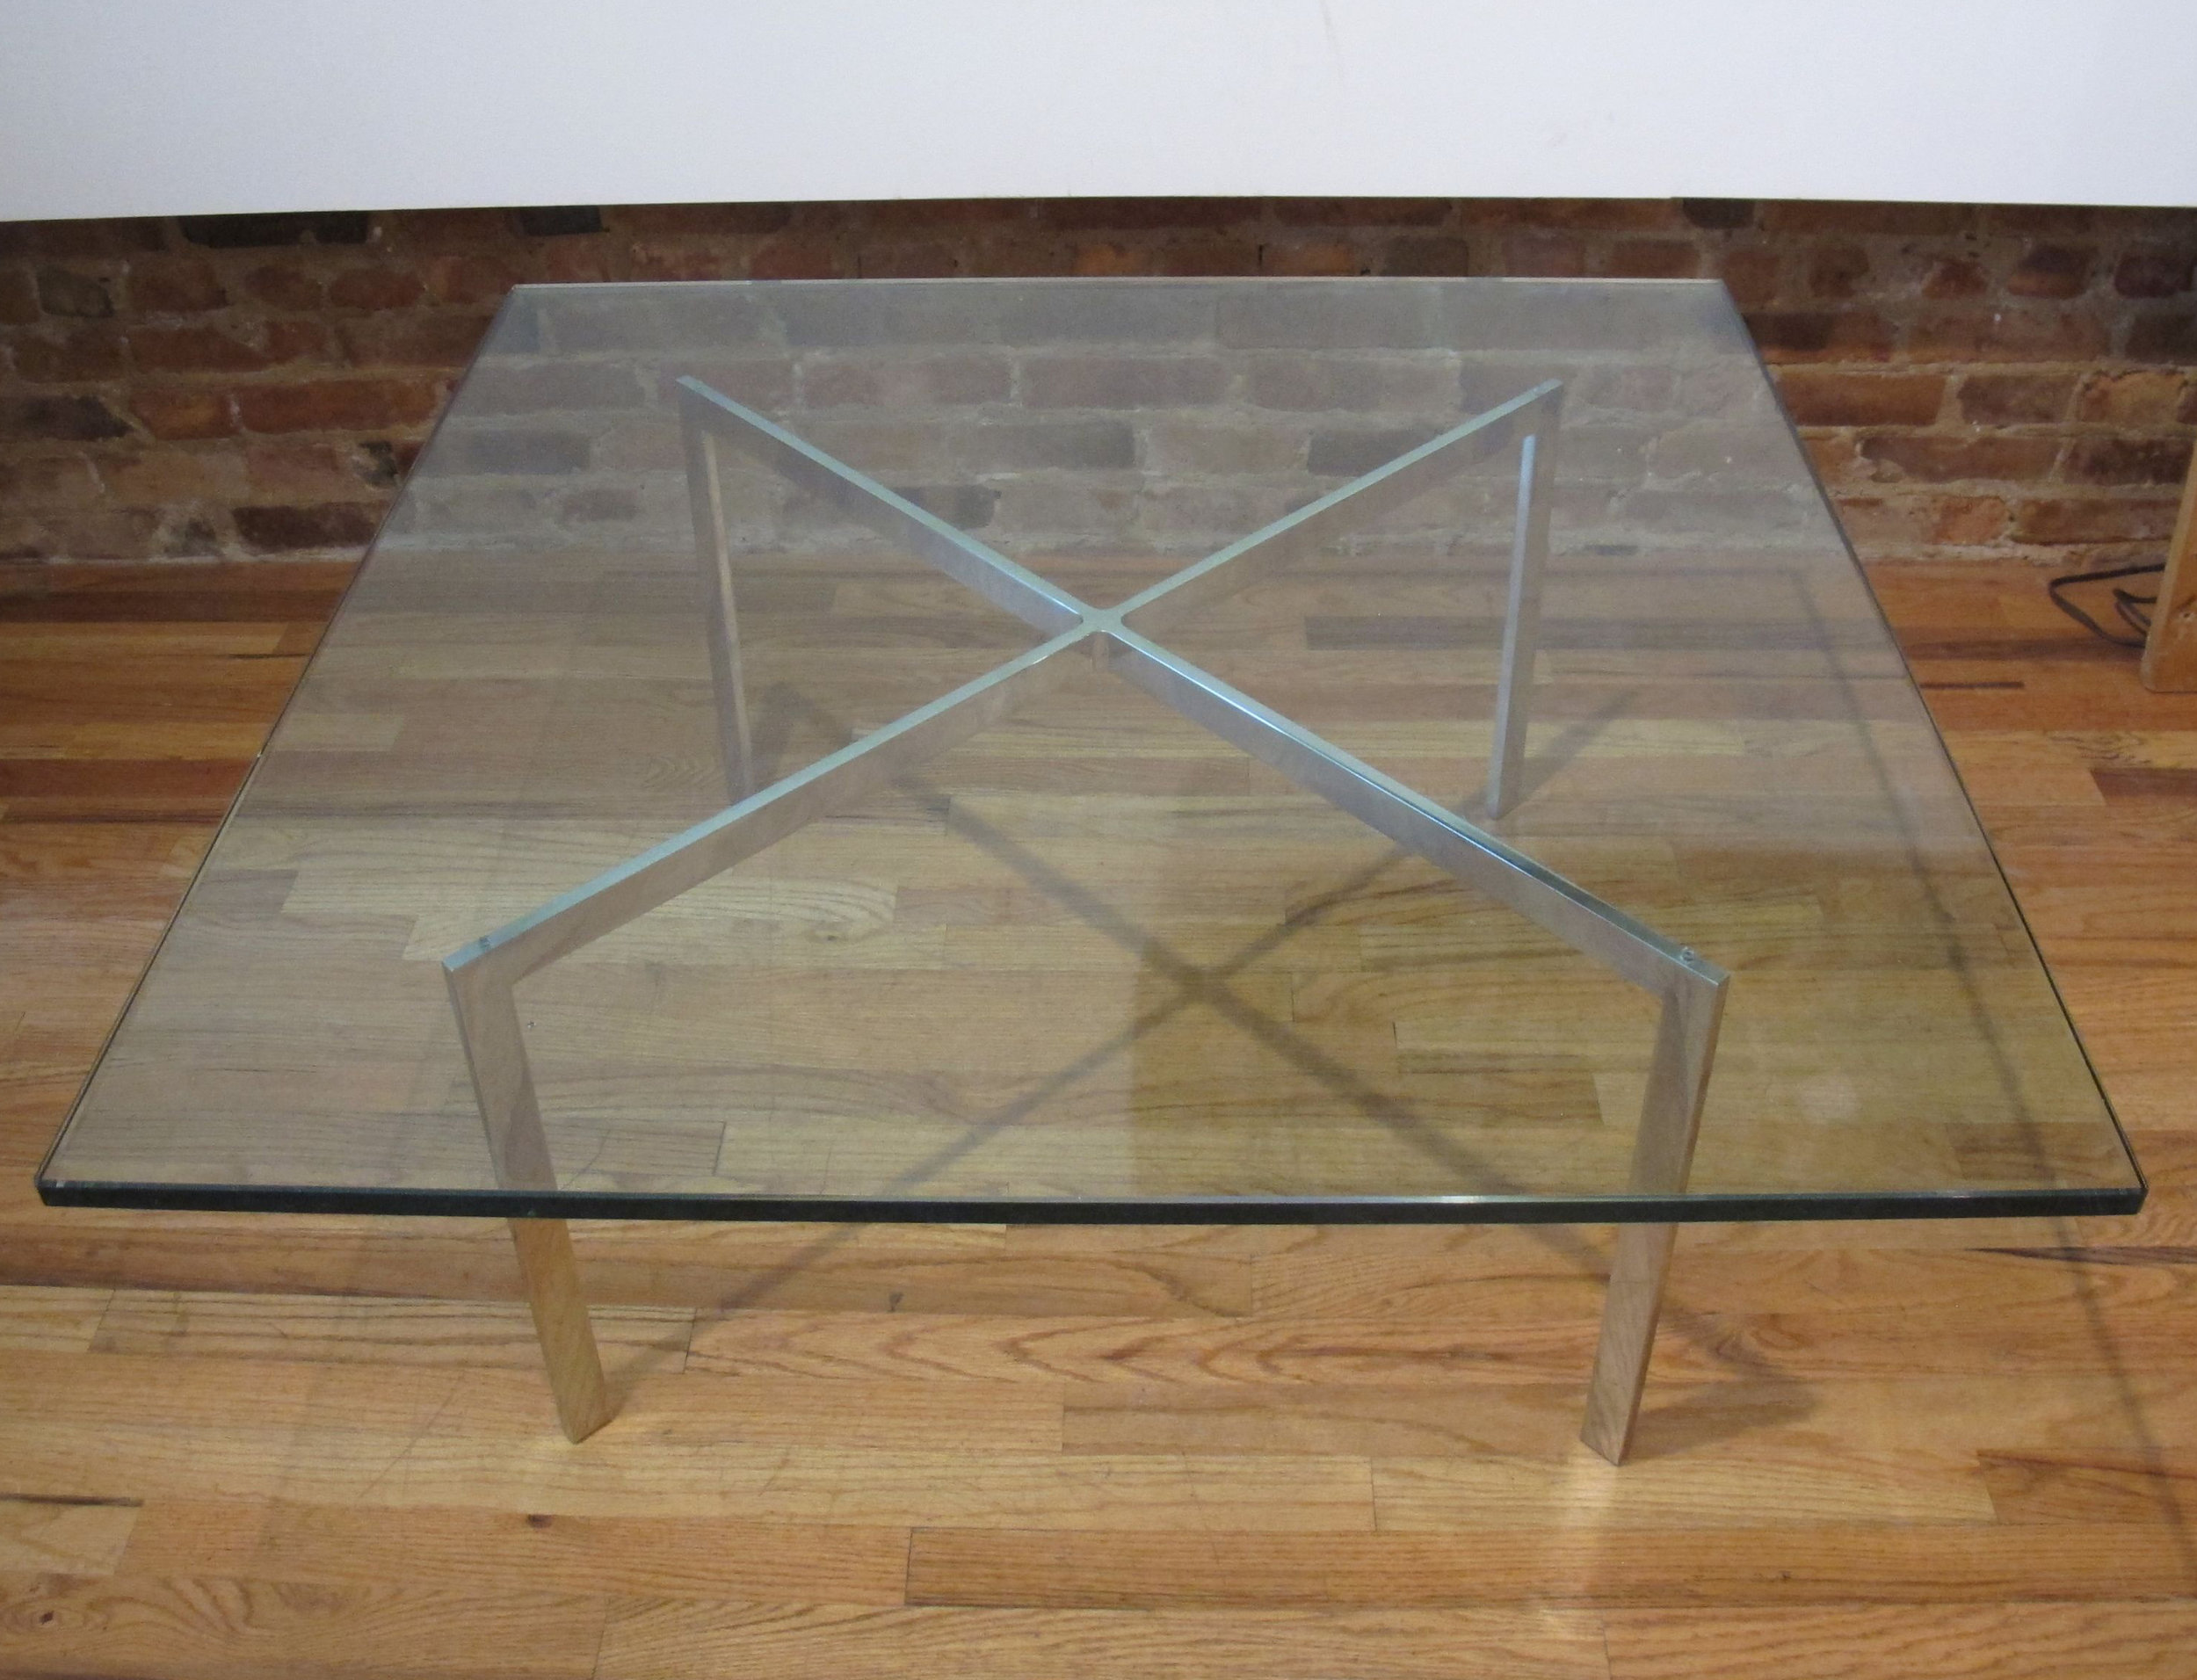 KNOLL BARCELONA GLASS & STEEL COFFEE TABLE BY MIES VAN DER ROHE